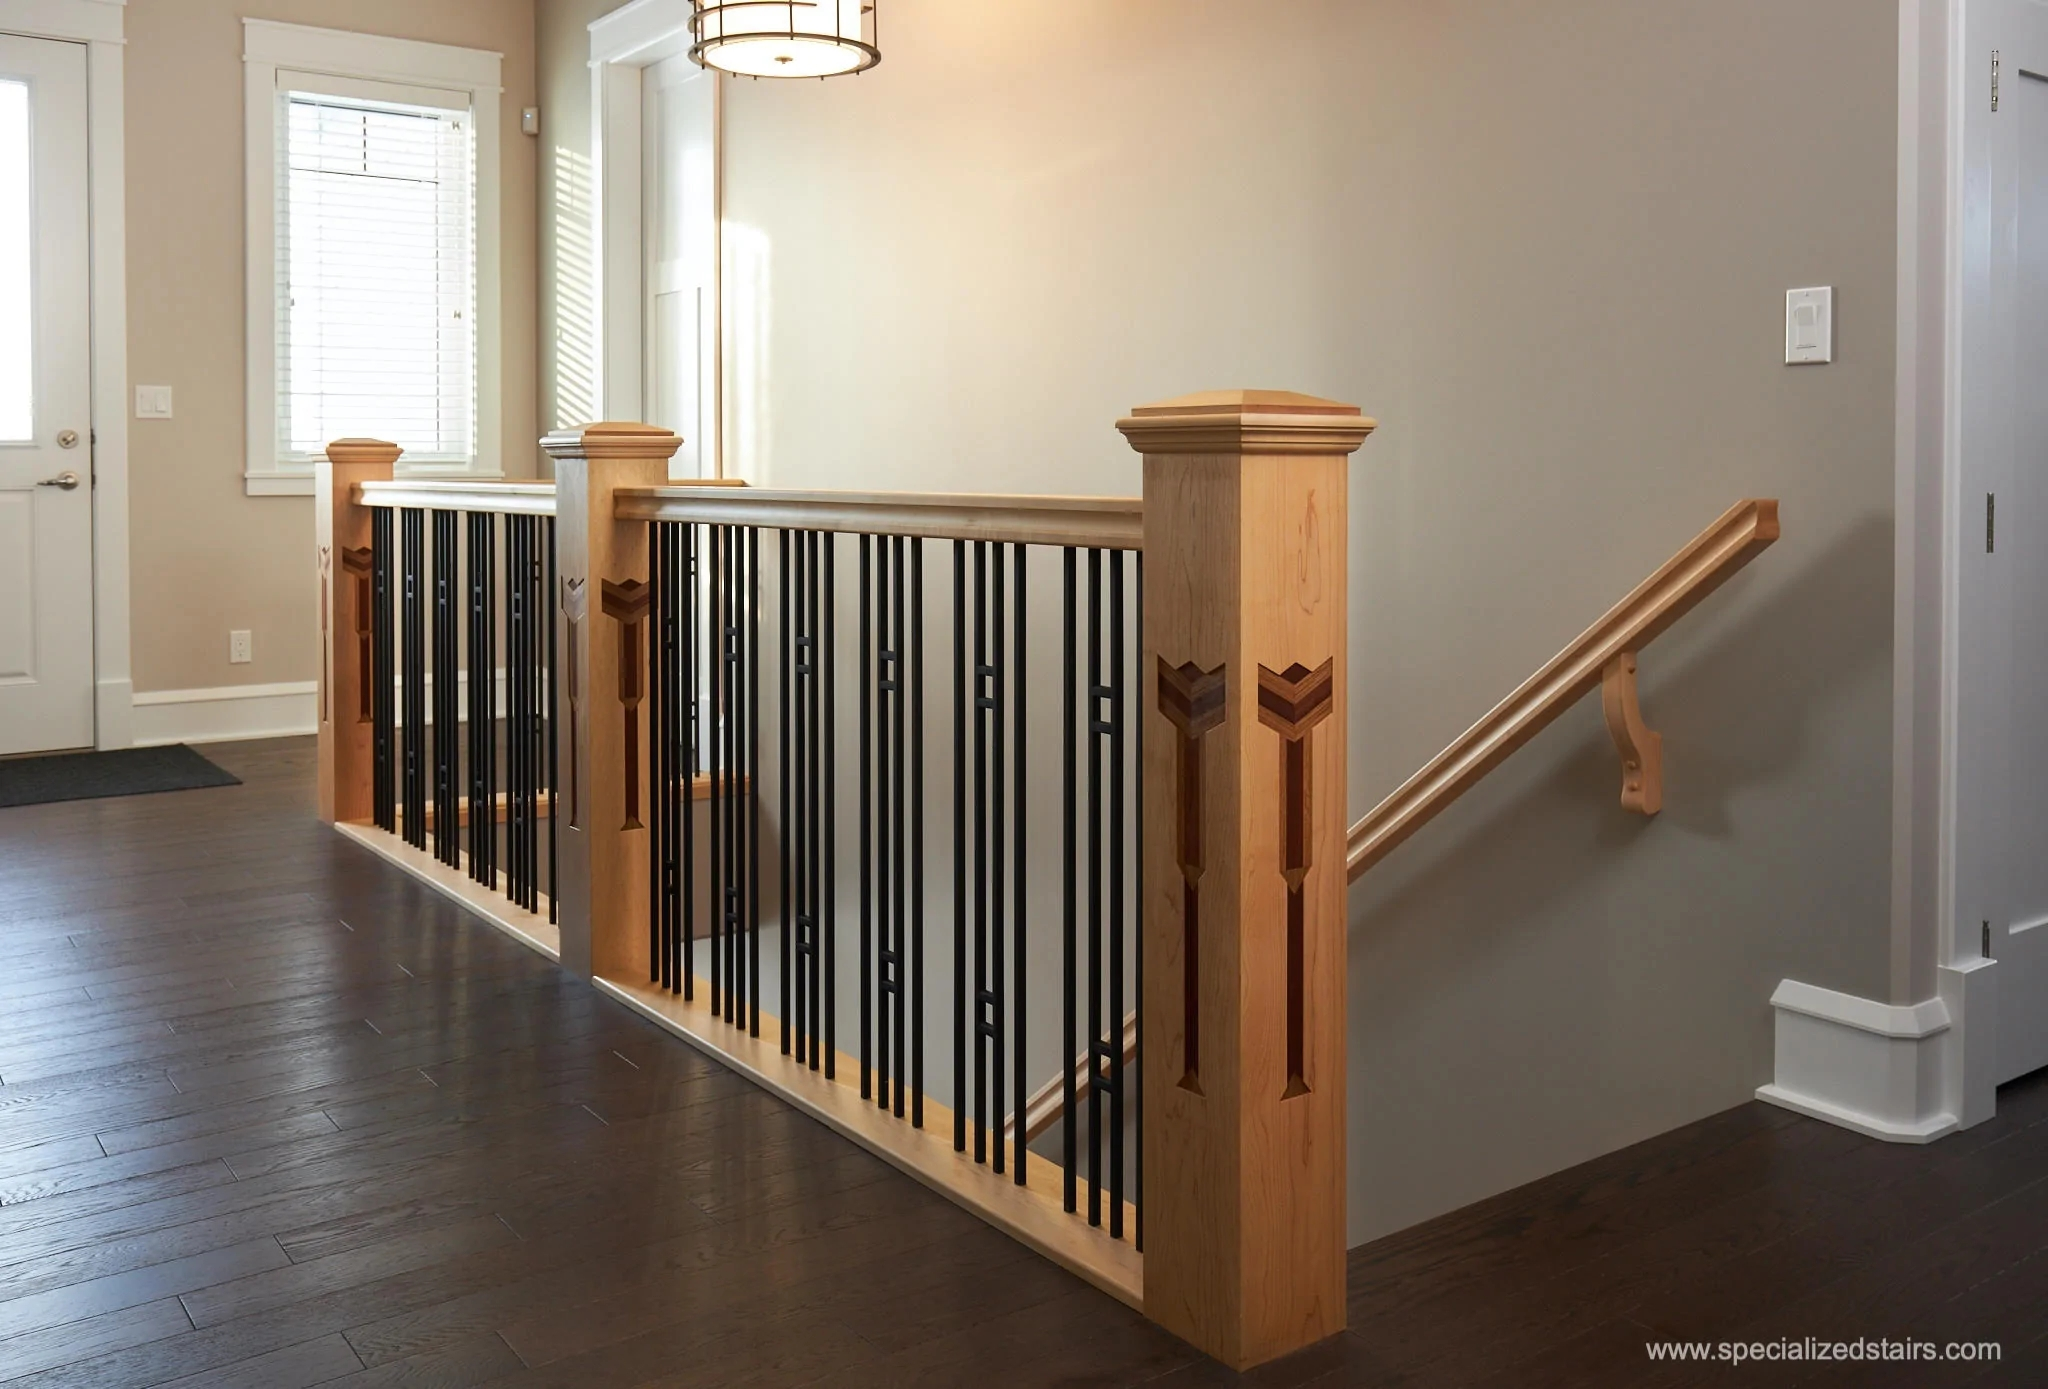 Make Your Stairs A Lasting First Impression – Custom Newel Posts   Custom Wood Stair Railing   Natural Wood   Barn Beam   Metal Spindle   Attic Stair   Rail